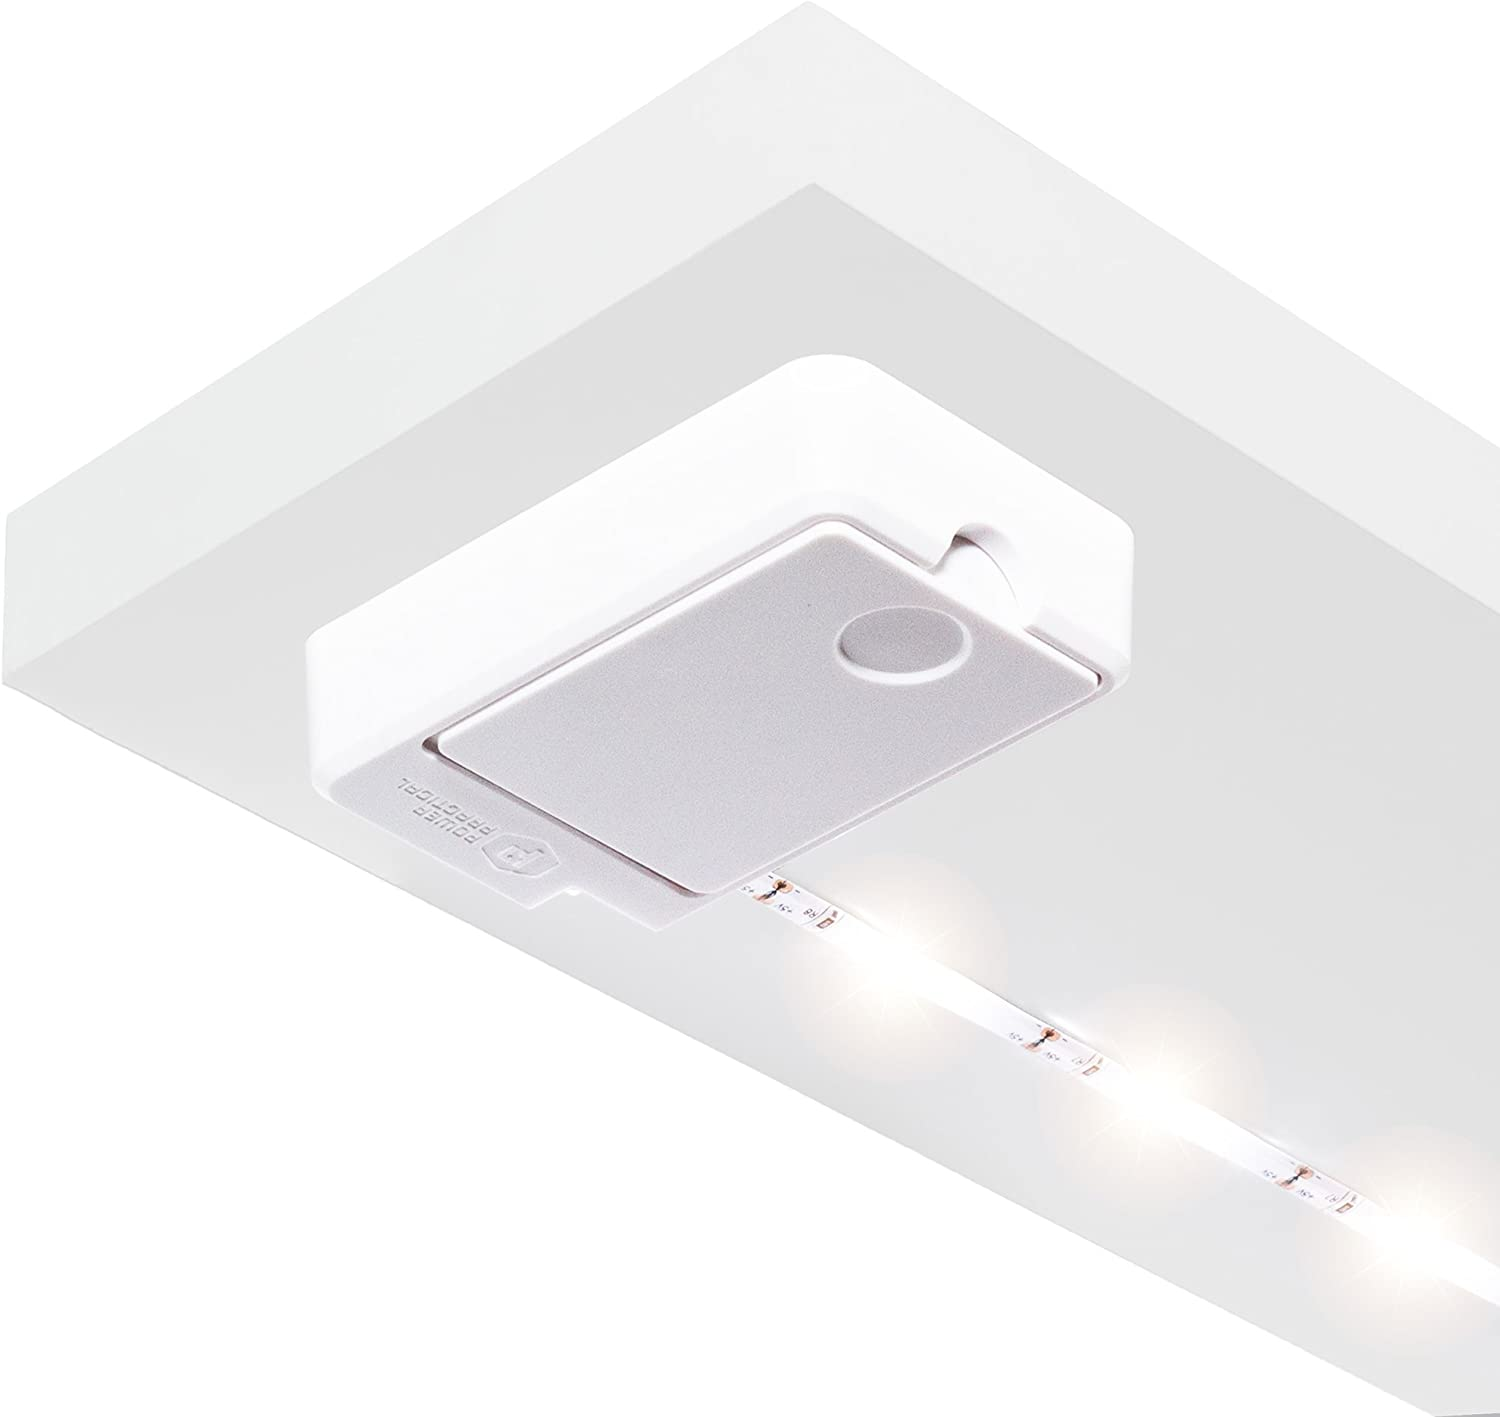 Luminoodle Click AA Battery Powered LED Push Lights -1-Pack - for Kitchen, Closet, Pantry, Shelf Lighting - 36in. Wireless Stick Anywhere Adhesive String Tap Lights - Warm White (2700K)